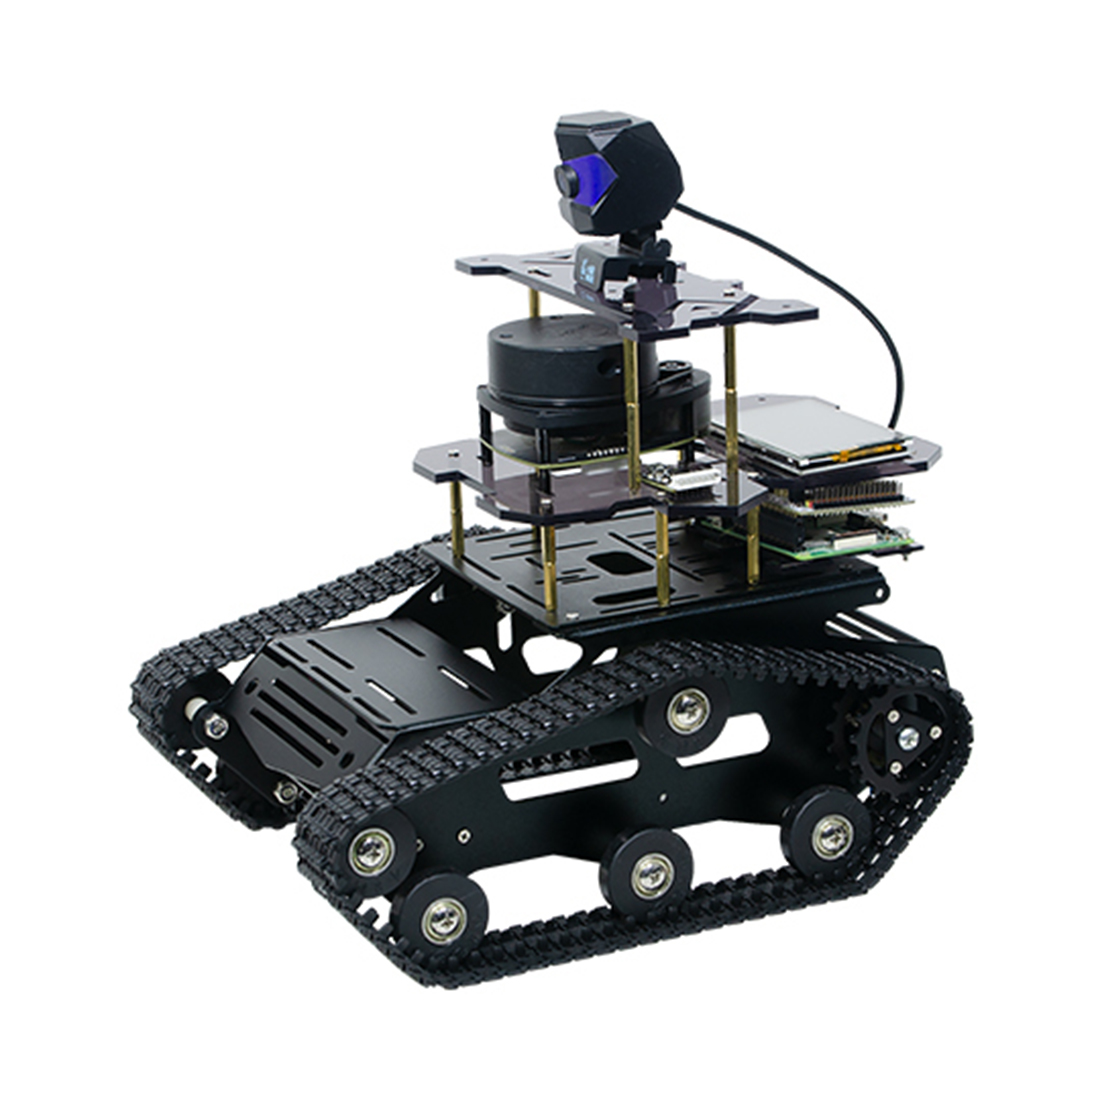 DIY Smart Robot Tank Chassis Car With Laser Radar For Raspberry Pi 4 (2G) Educational Toy Gift For Kid Adult - Black/Yellow/Blue